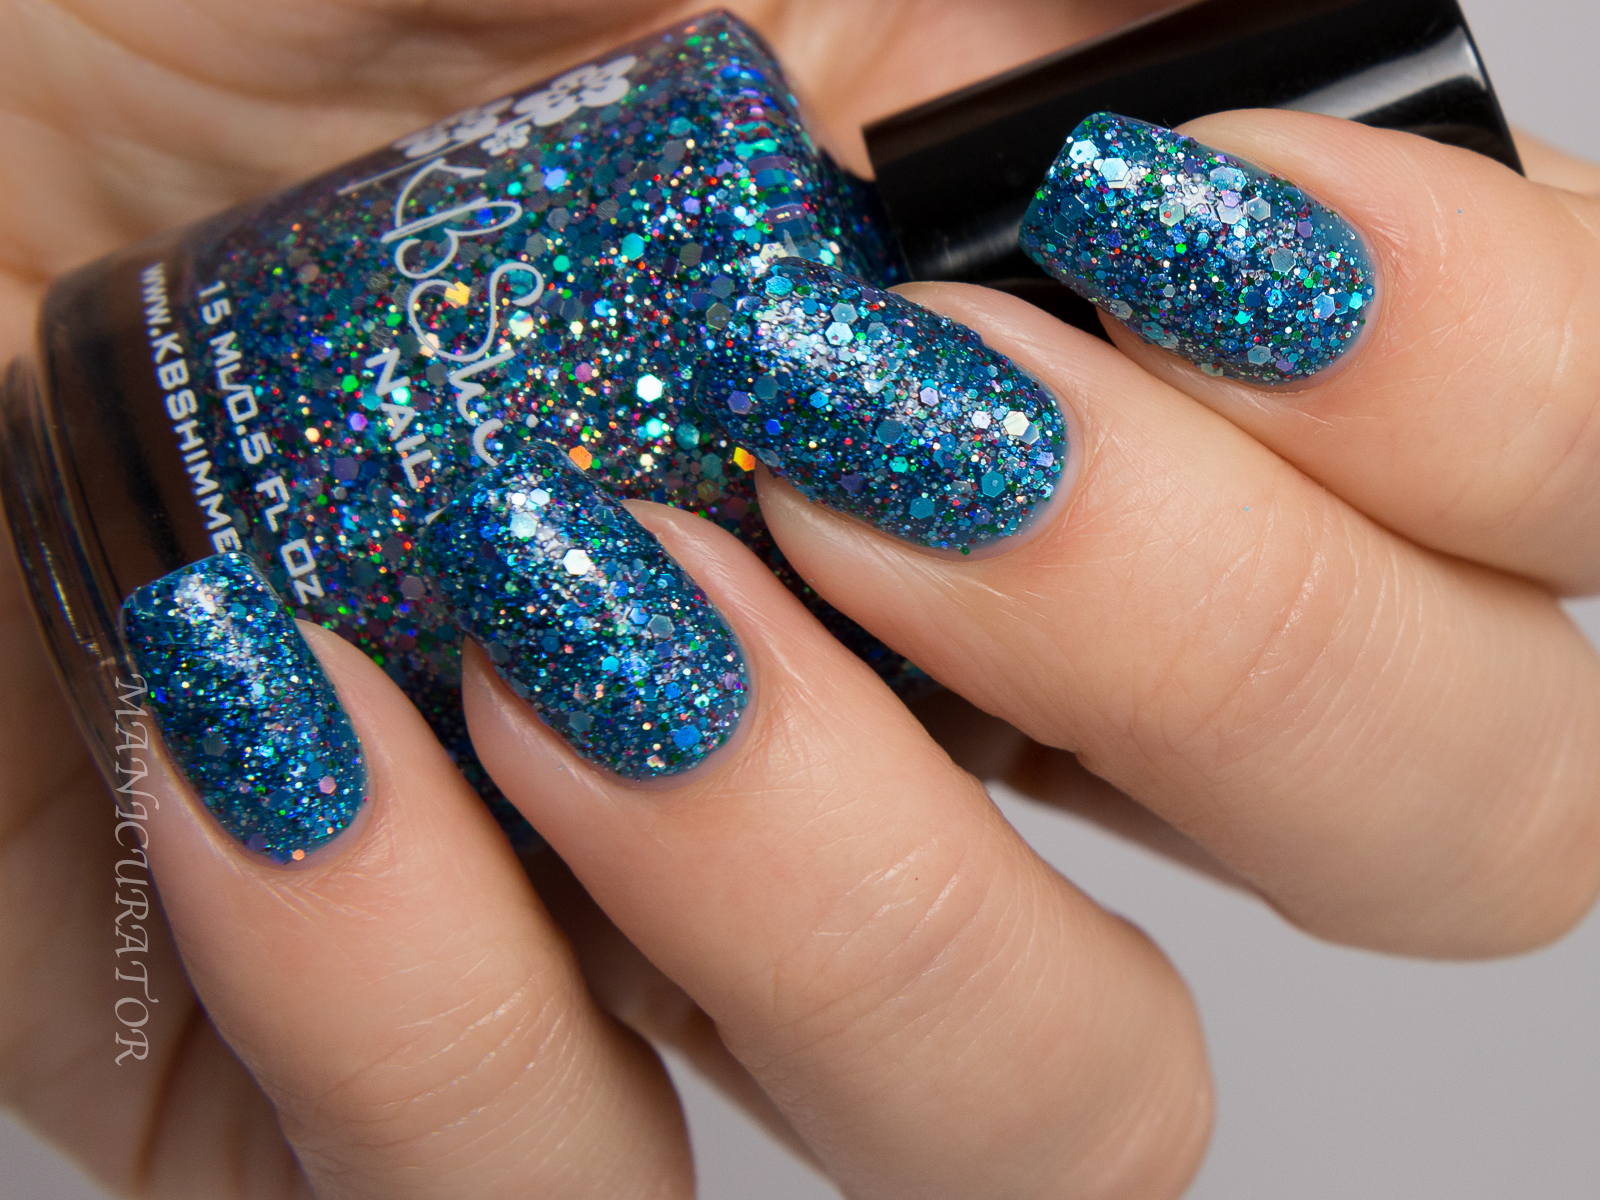 KBShimmer-Winter-2014-Too-Cold-To-Hold-Texture-Swatch